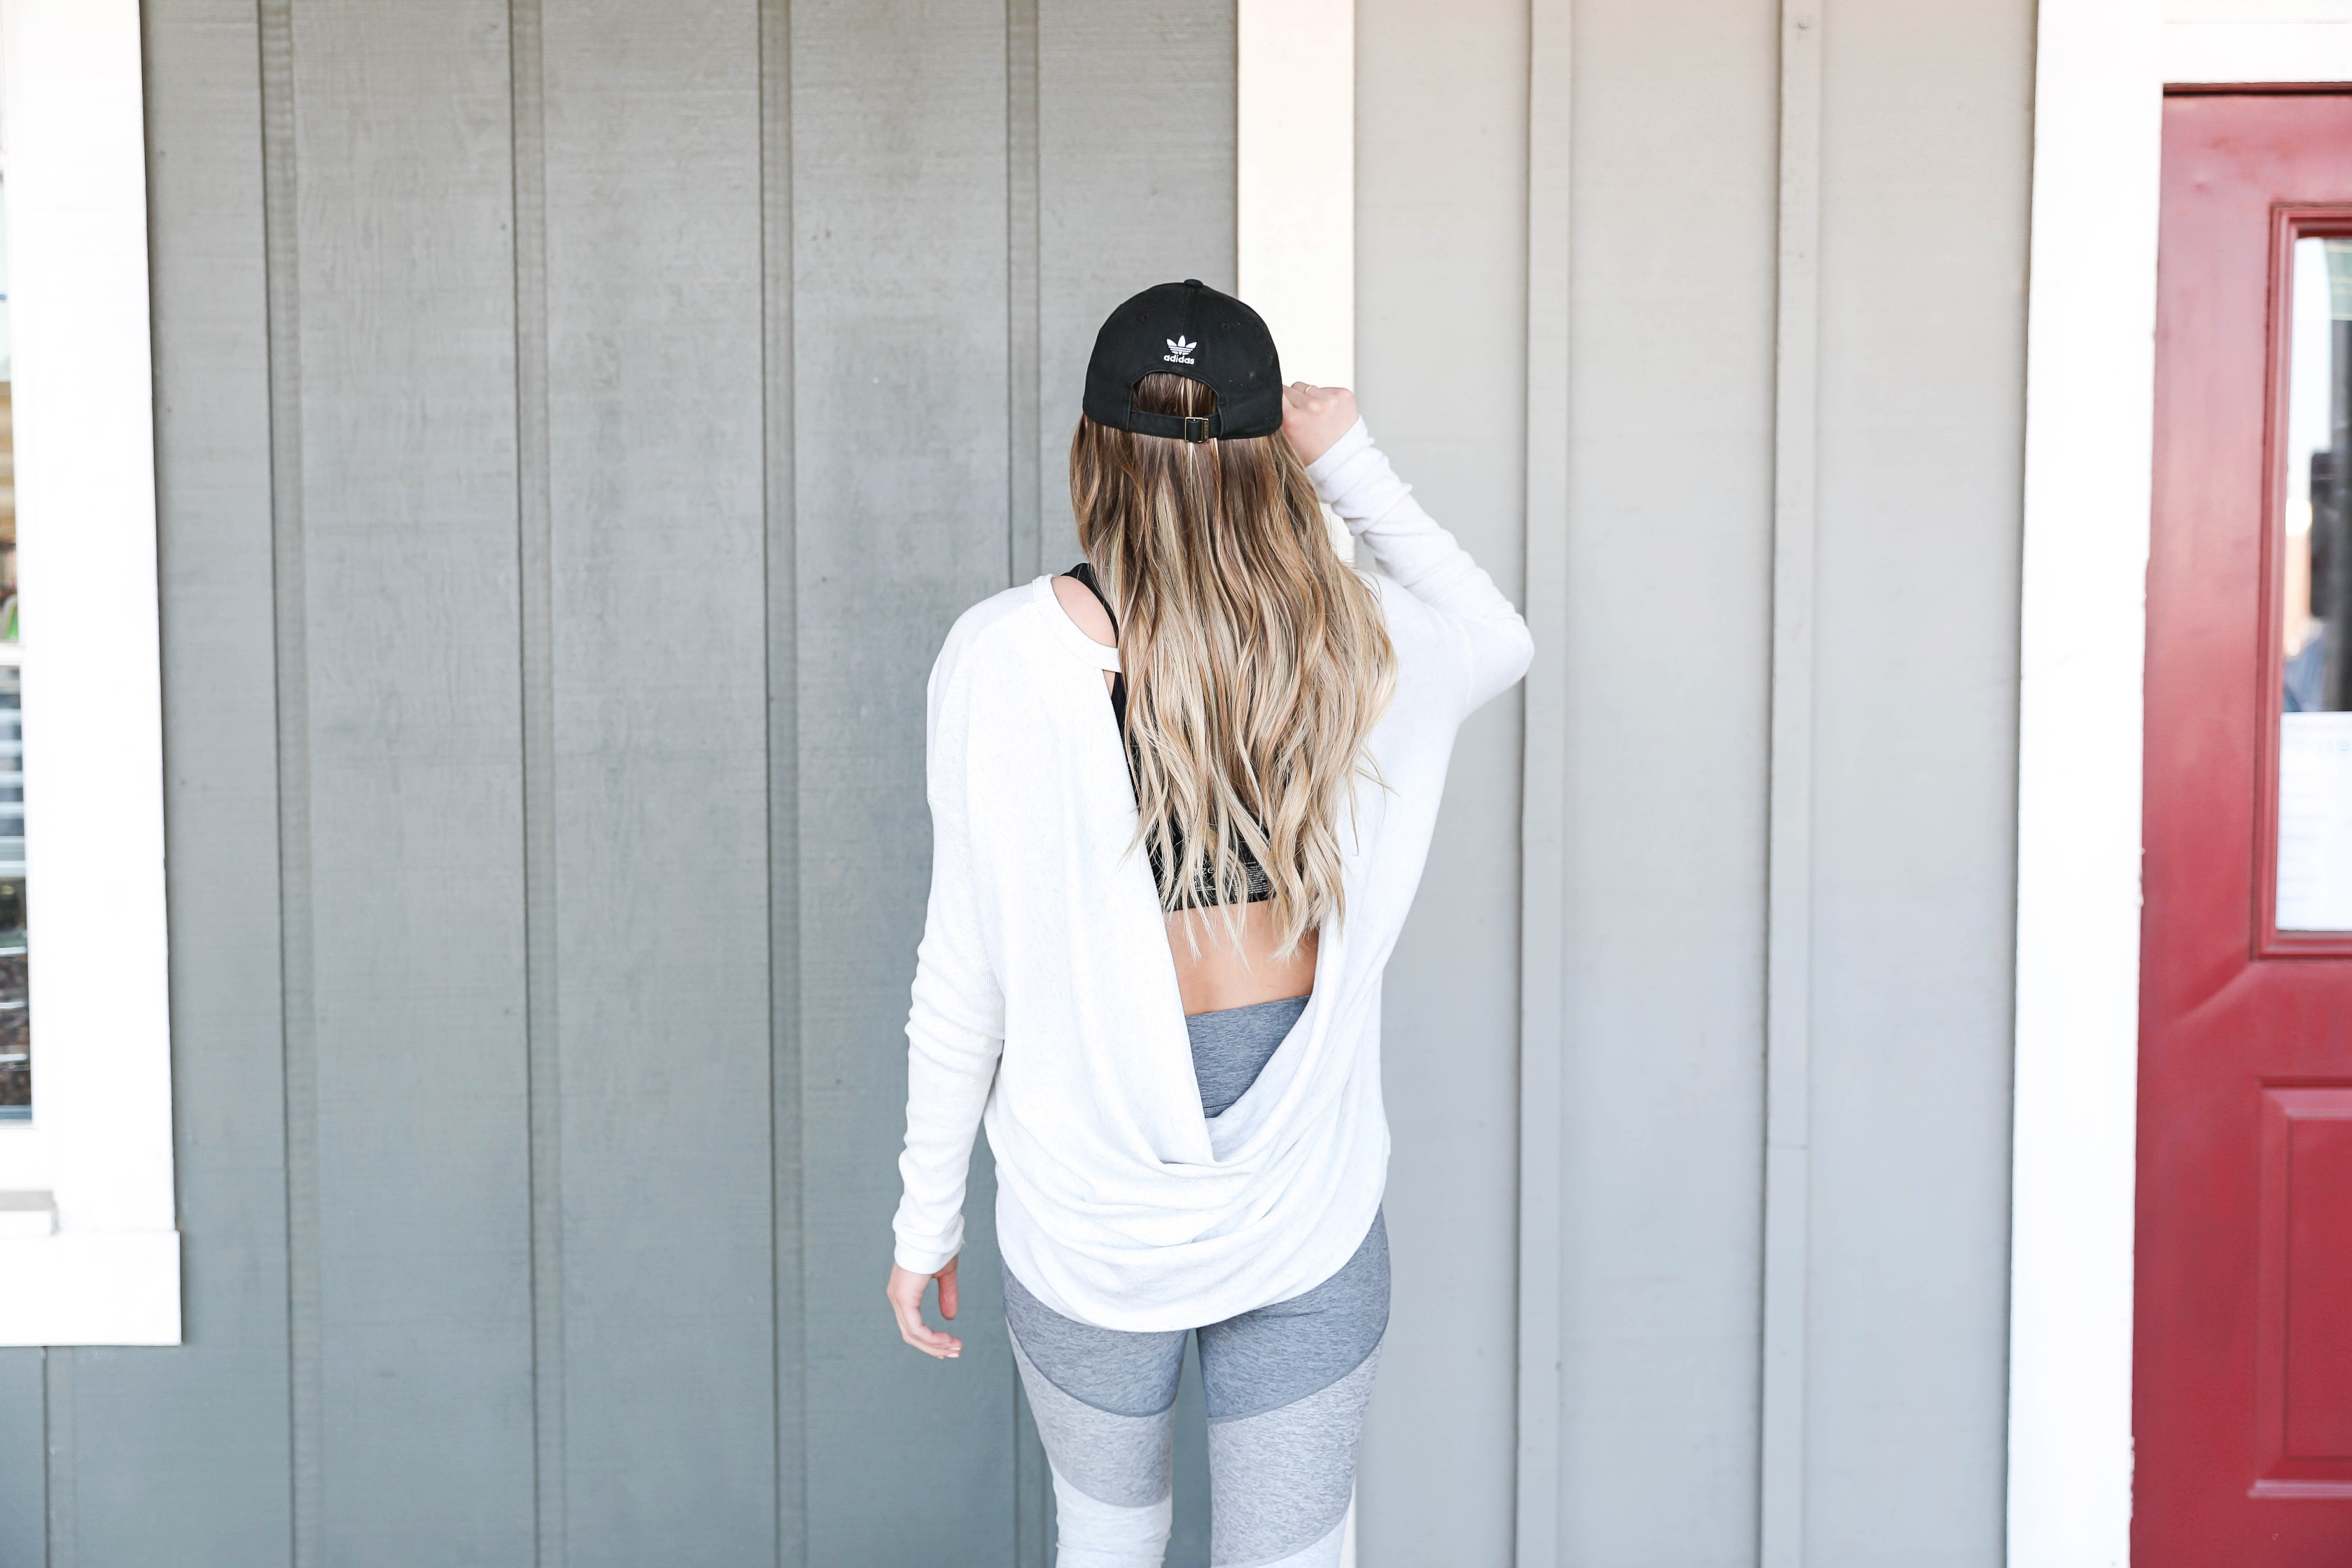 Cute New Year workout outfits for resolution inspiration in 2019! Stick to your fitness goals with a little outfit motivation! I love these color block leggings paired with the open back top and Adidas hat! Details on fashion blog daily dose of charm by lauren lindmark